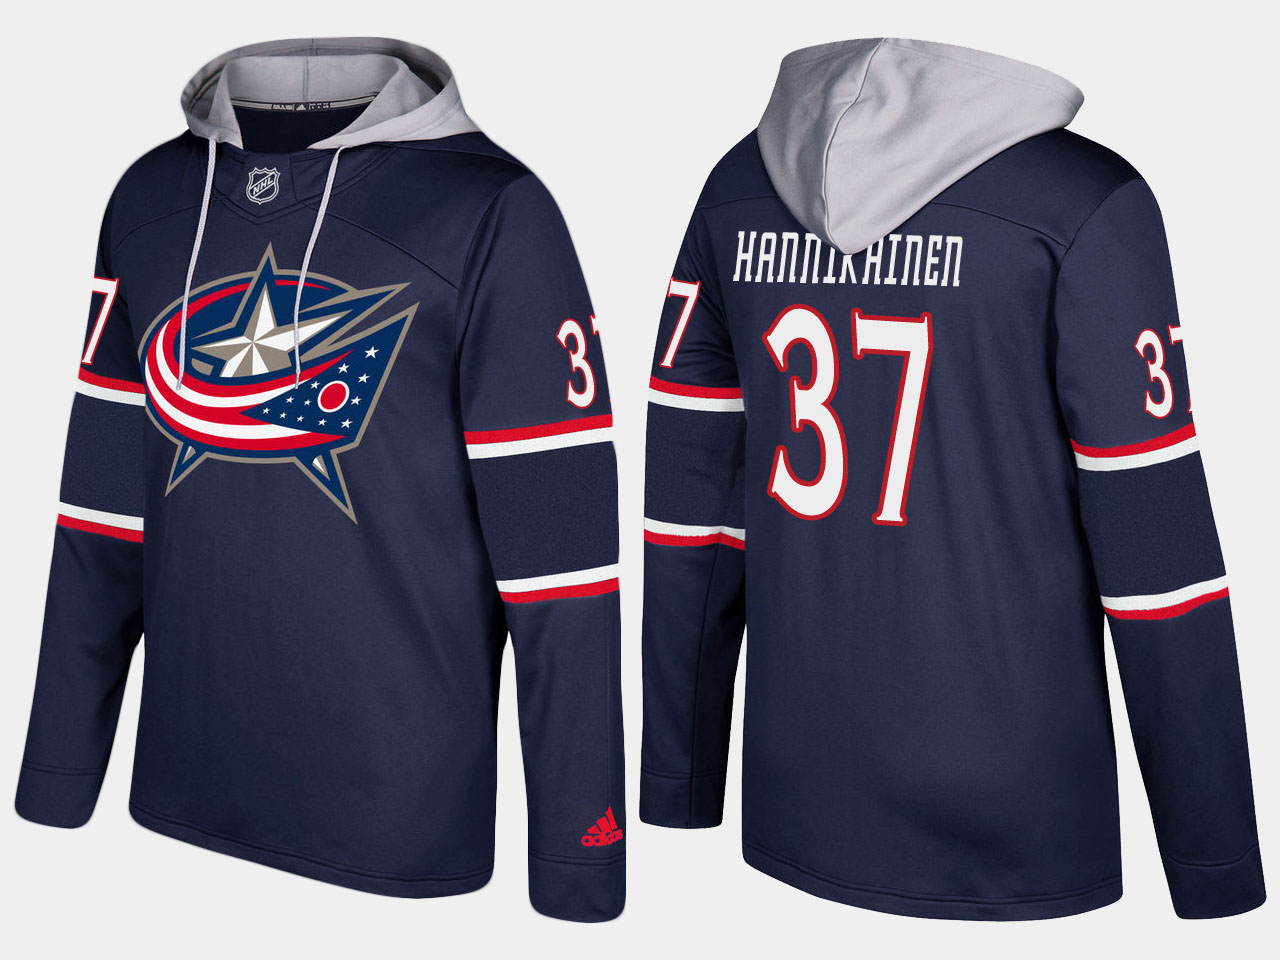 Men NHL Columbus blue jackets 37 markus hannikainen navy blue hoodie